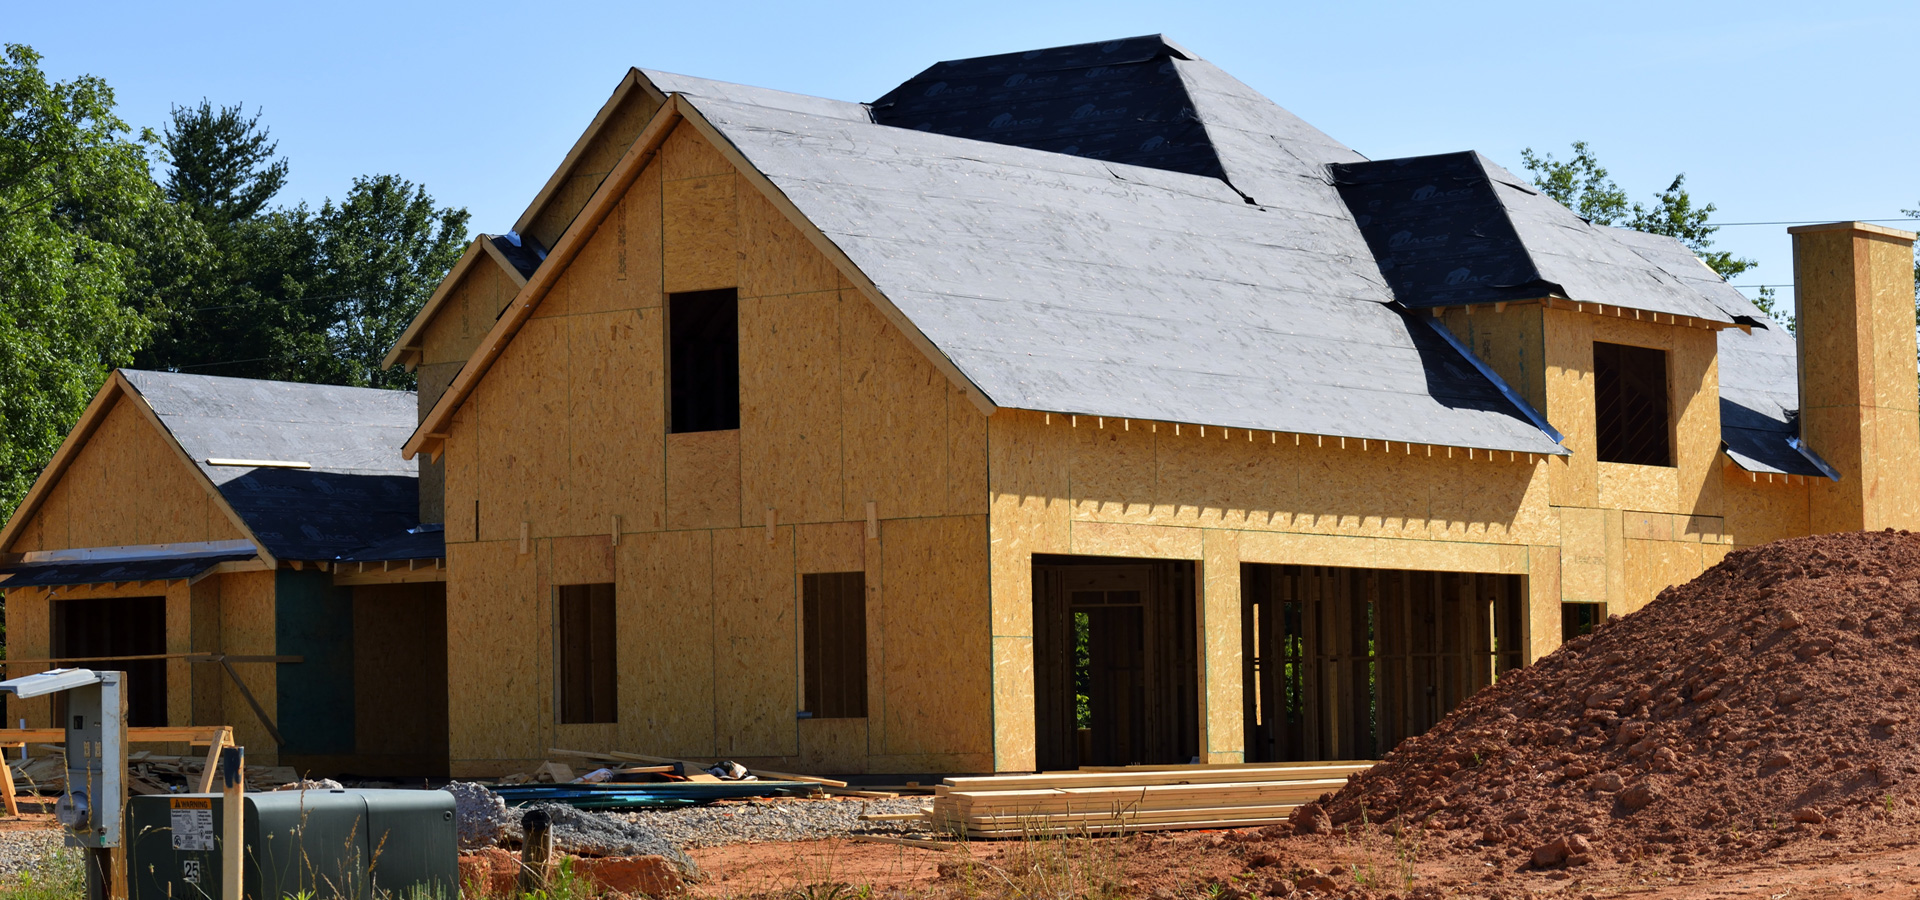 Rebuild your home after natural disasters